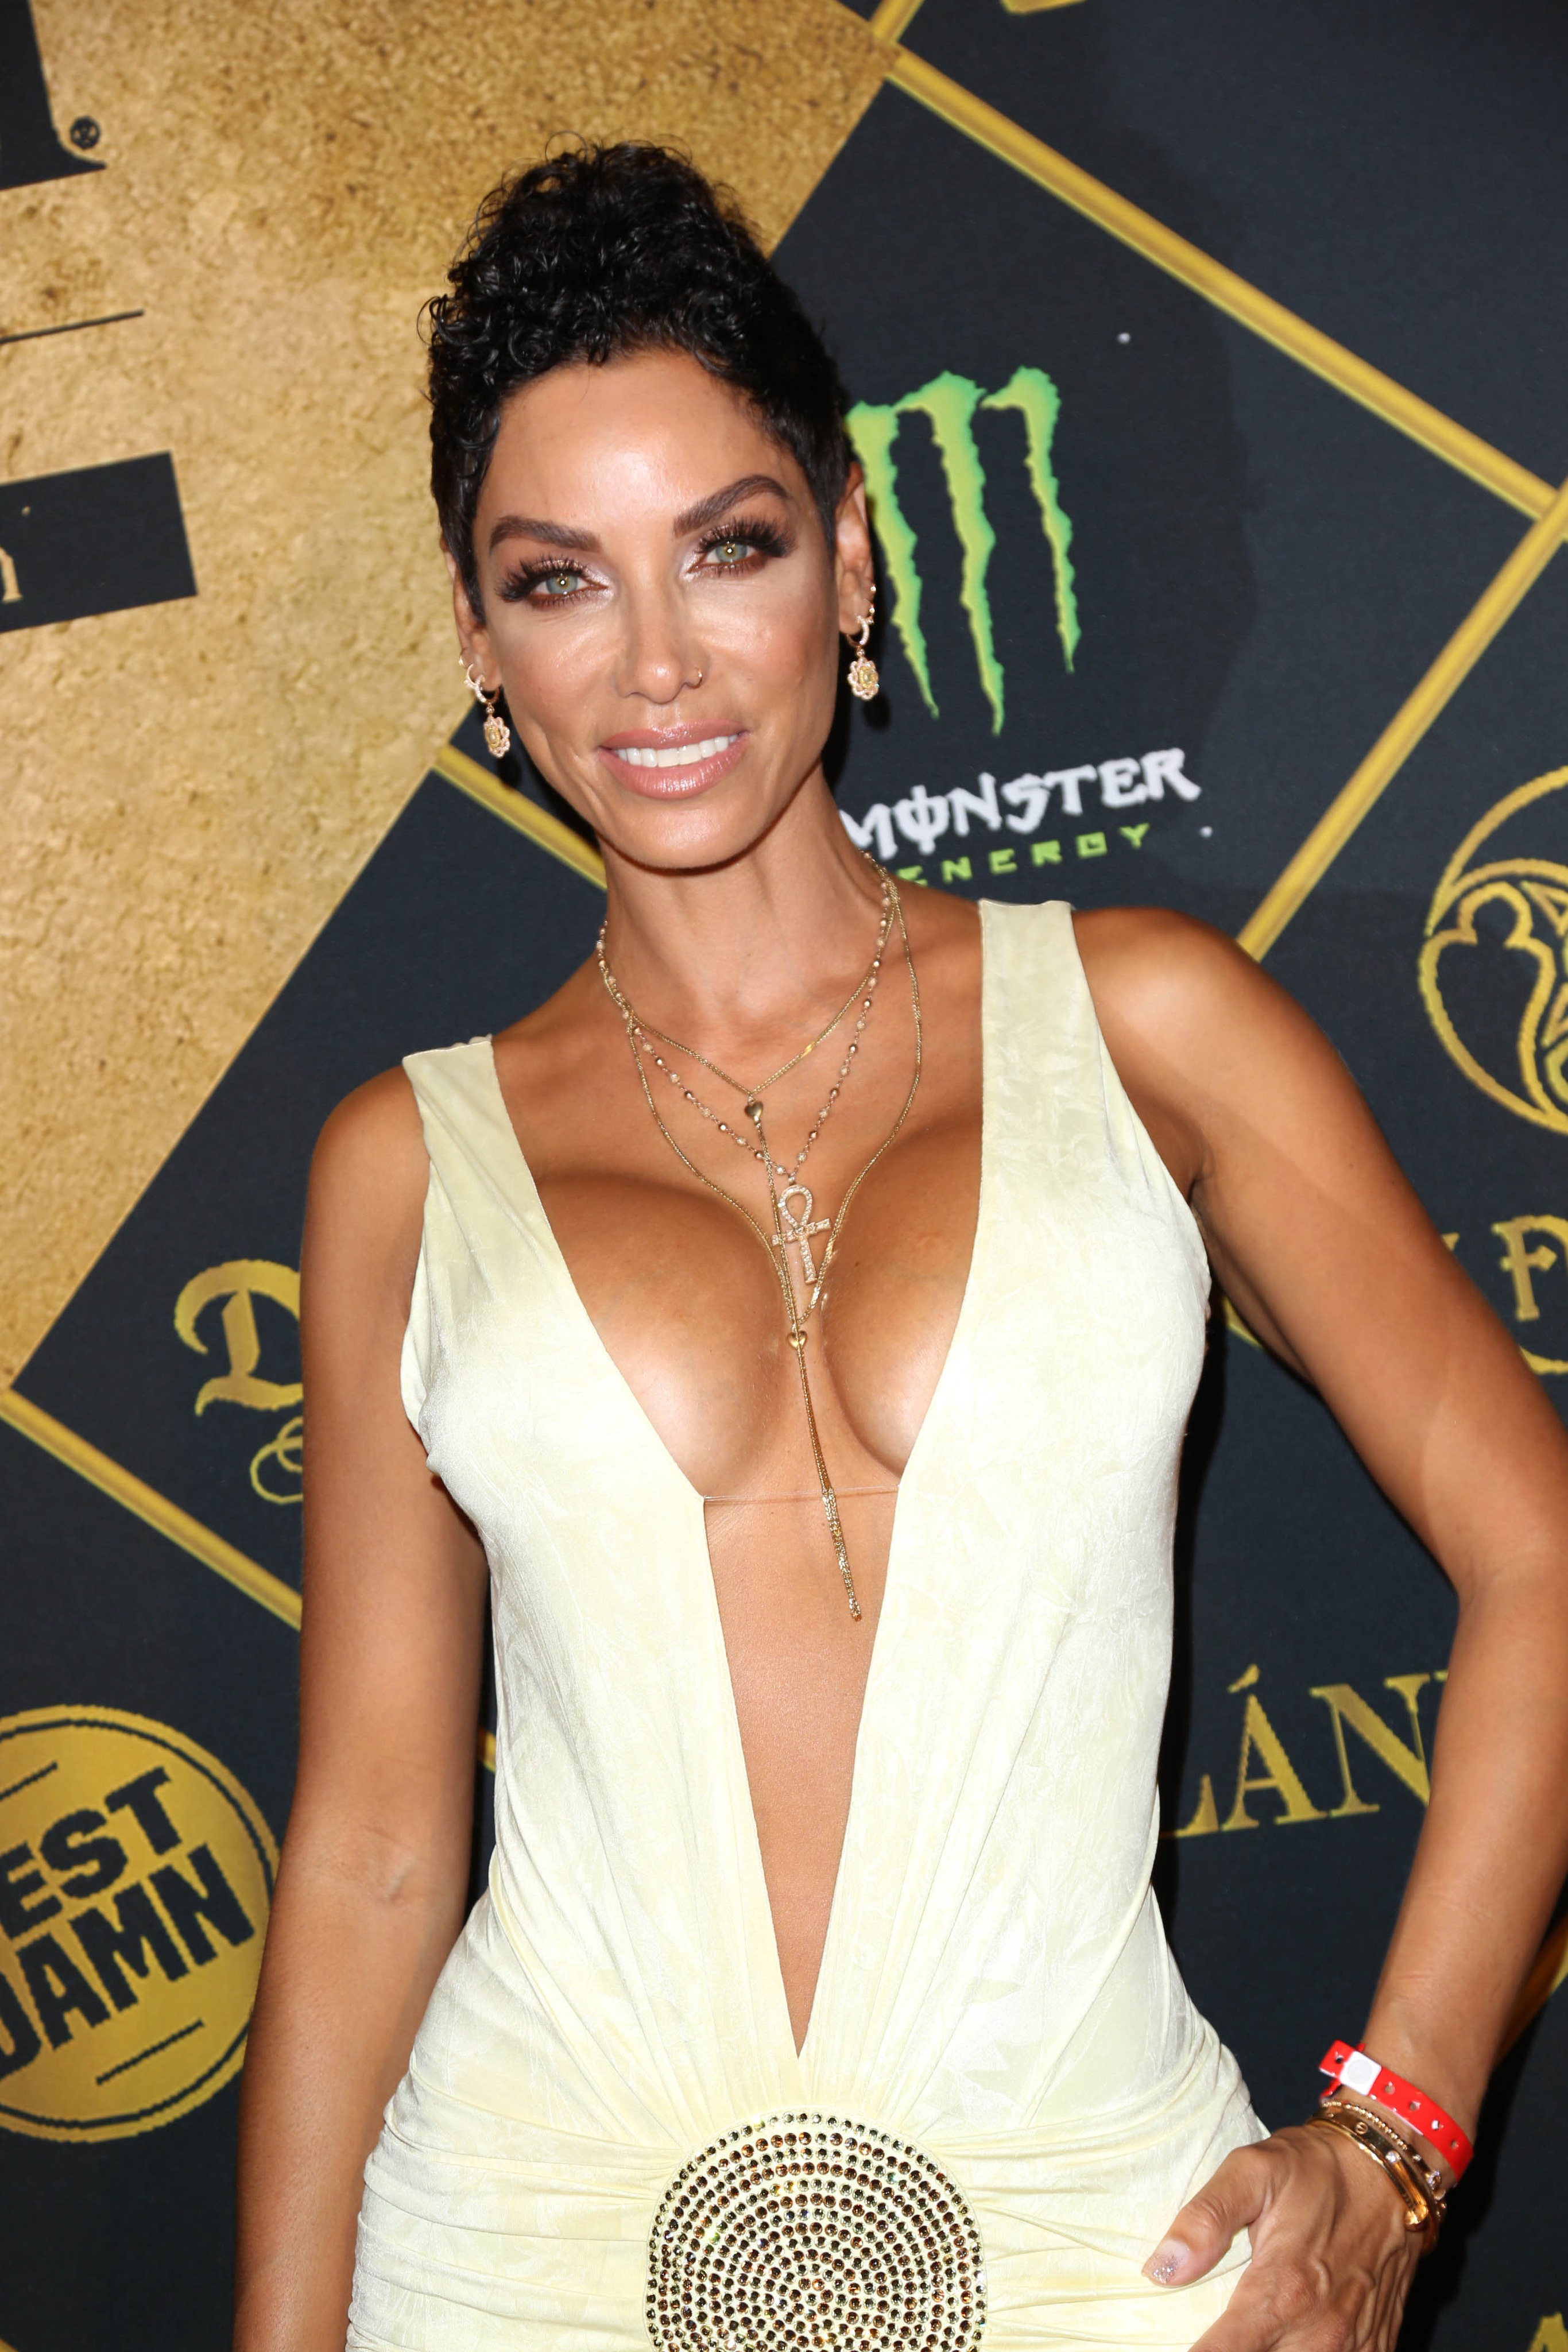 Nicole Mitchell Murphy naked (96 photos) Fappening, Snapchat, swimsuit